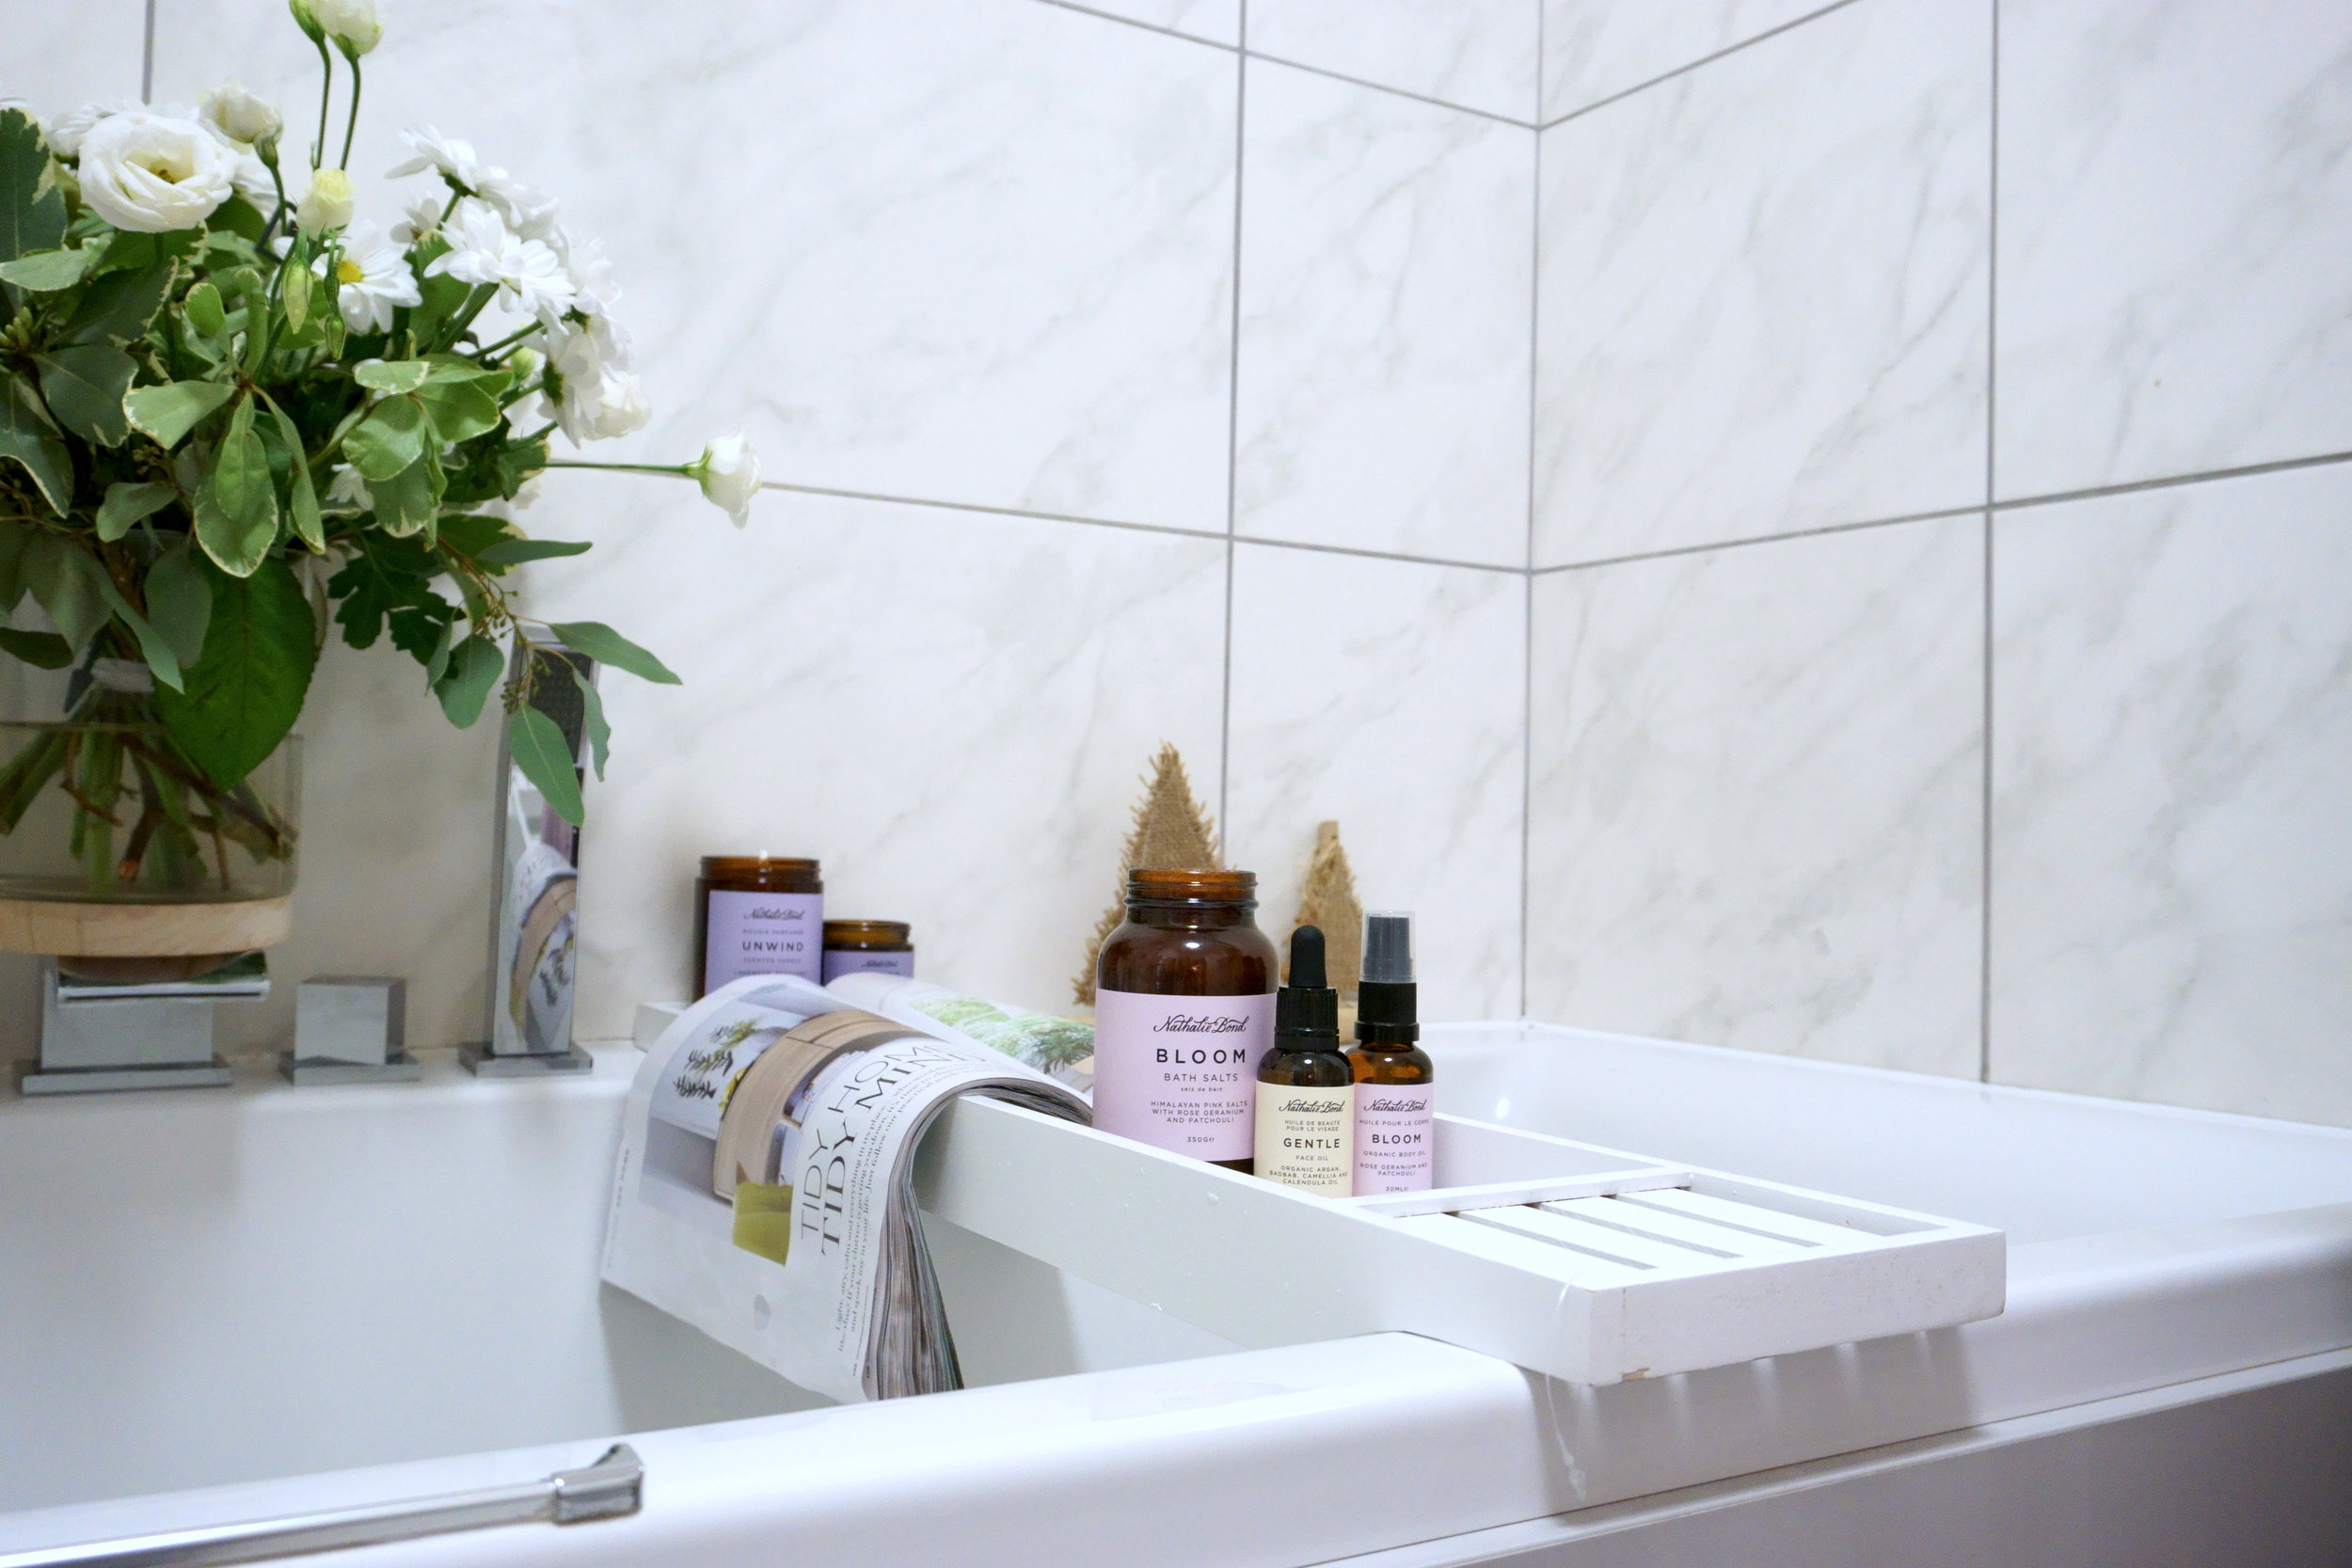 Taking a bath has been proven to uplift your mood. Here's my mood-enhancing bath set-up…